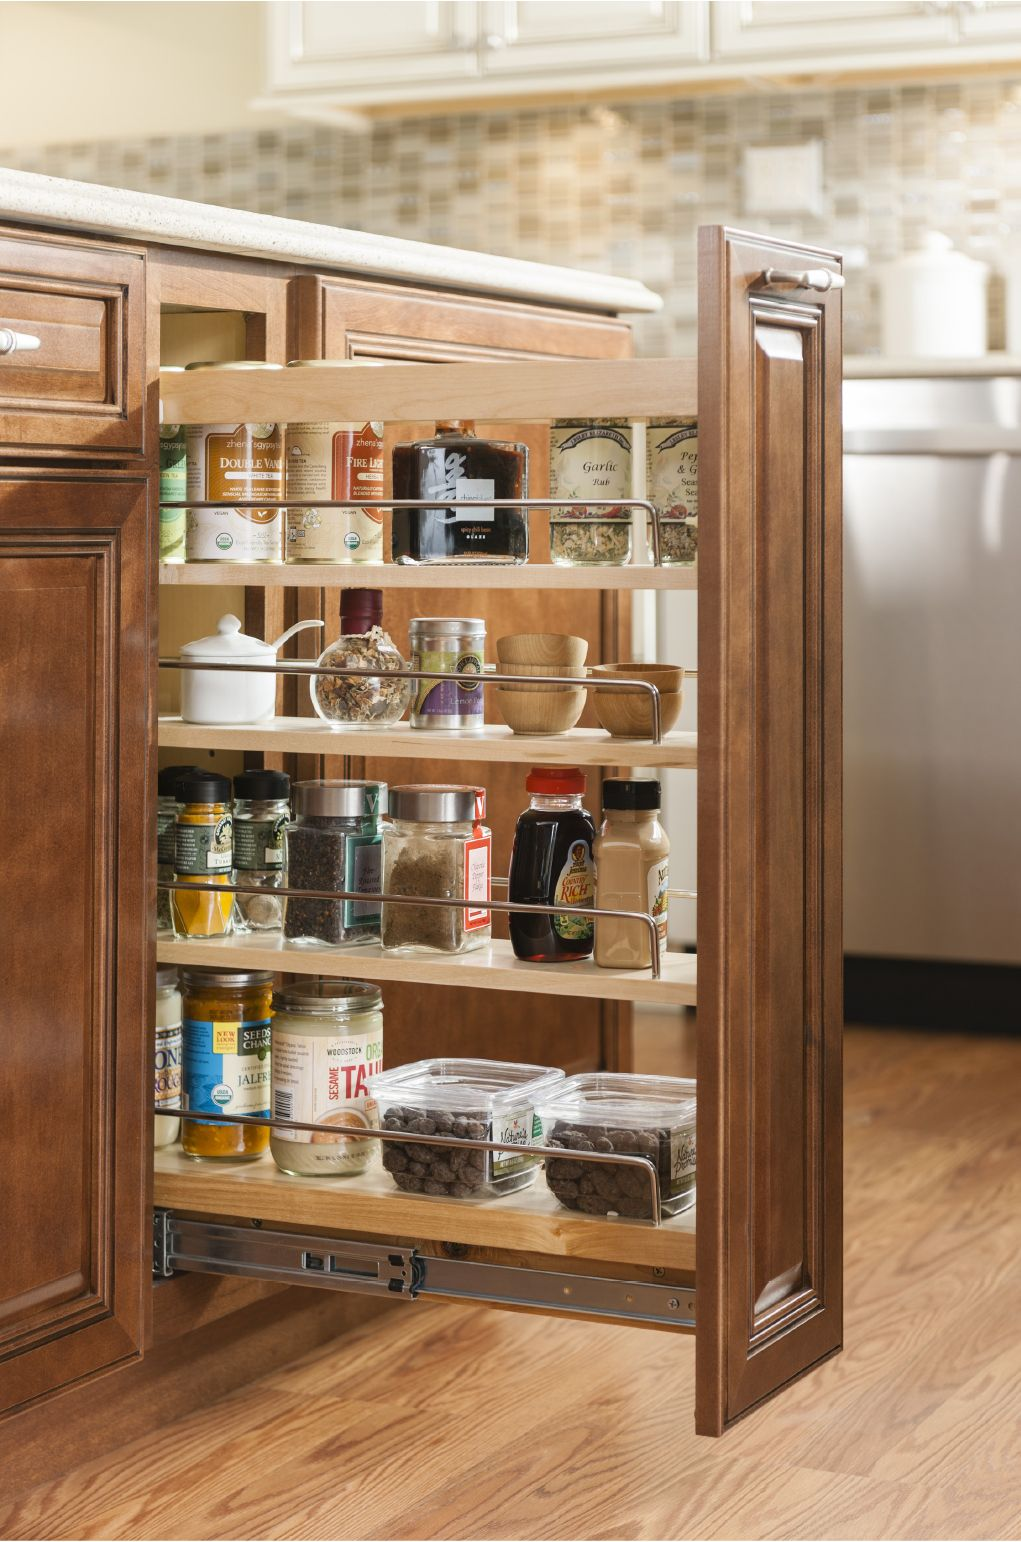 Base Pantry Pull Out Organization Design By Allen Roth Kitchen Renovation Storage Design